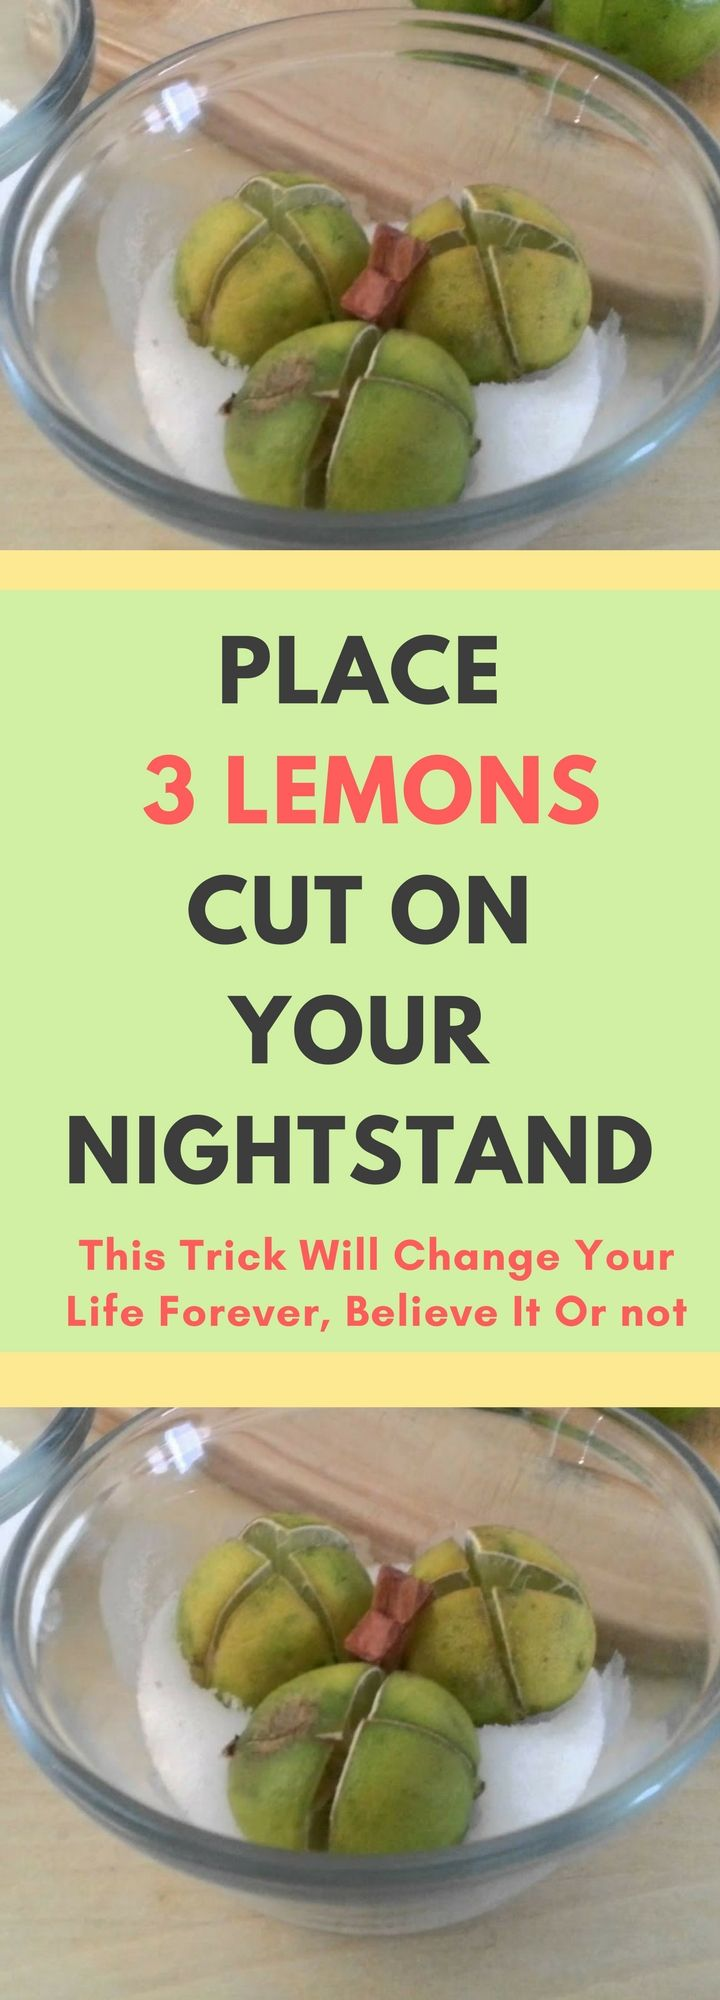 Place 3 Lemons Cut On Your Nightstand, This Trick Will Change Your Life Forever, Believe It Or not.!!||!! !!!